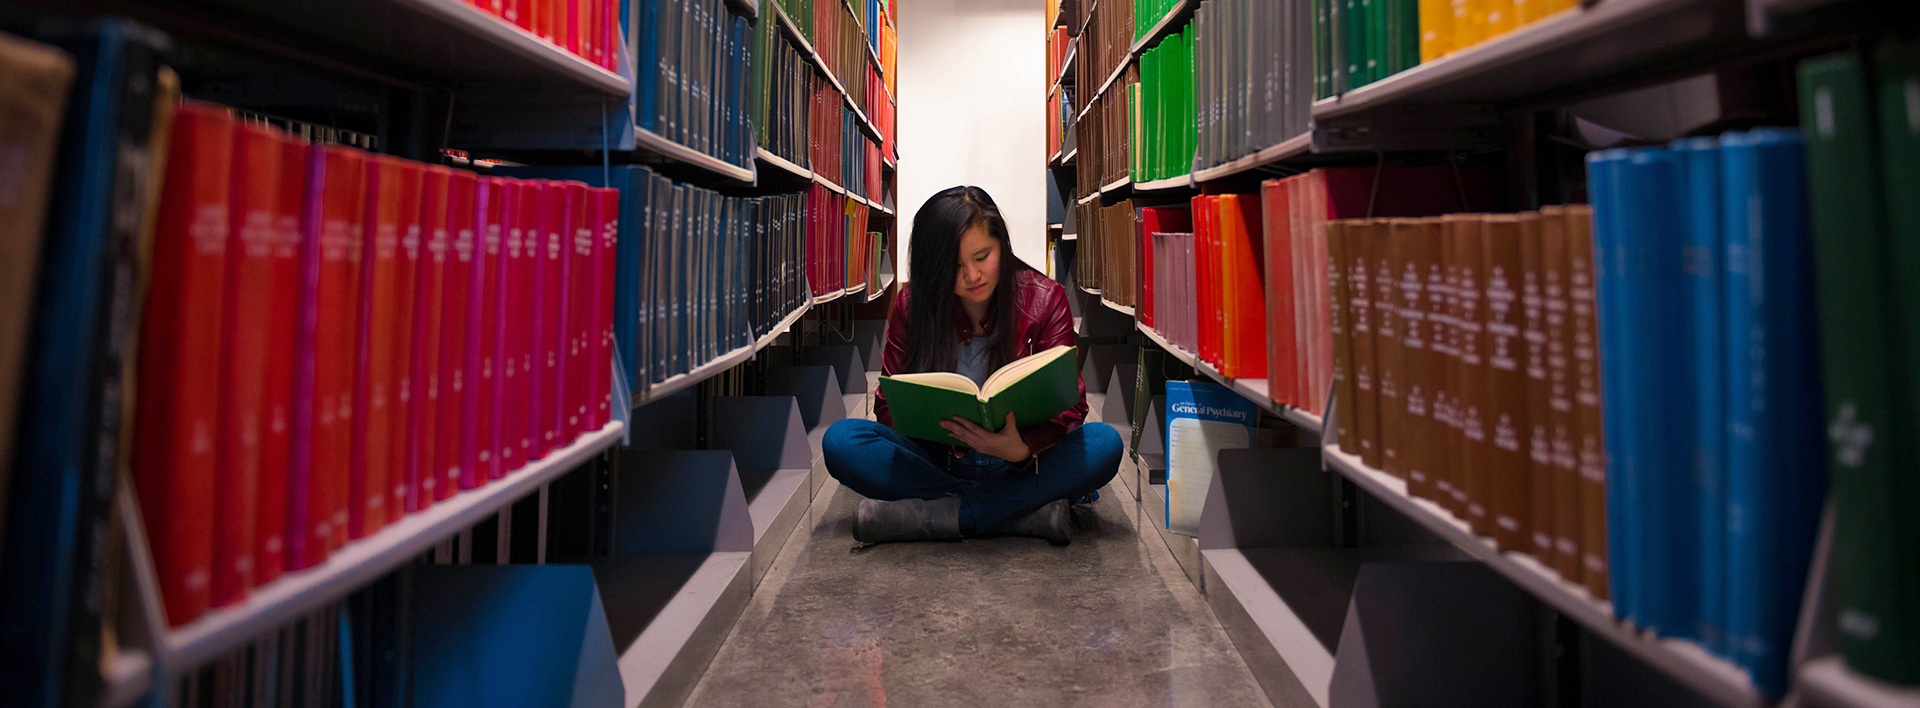 Photo Challenge Winner of student reading in the library stacks, taken by Josue Mendez